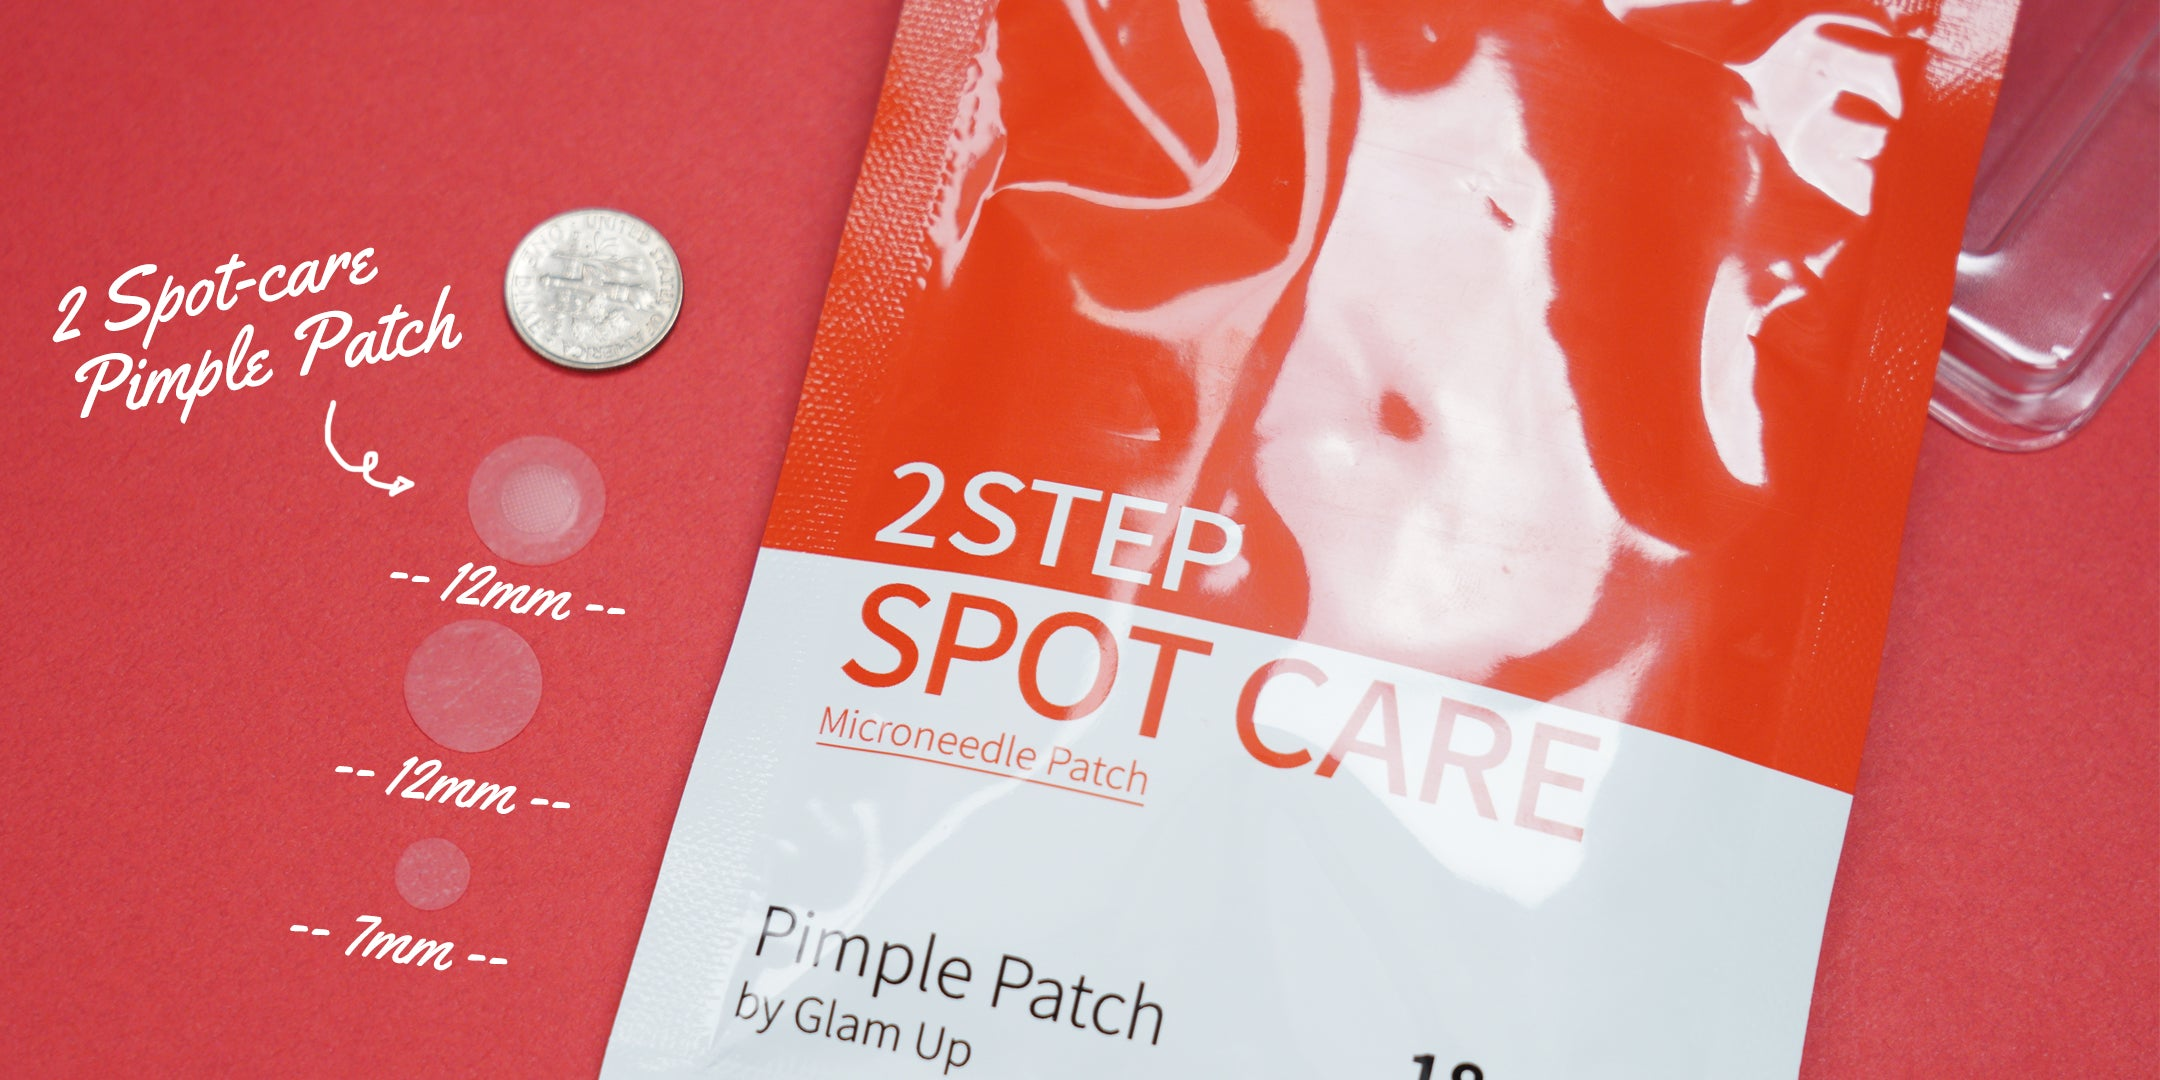 Microneedle and different sized hydrocolloid patches in one package